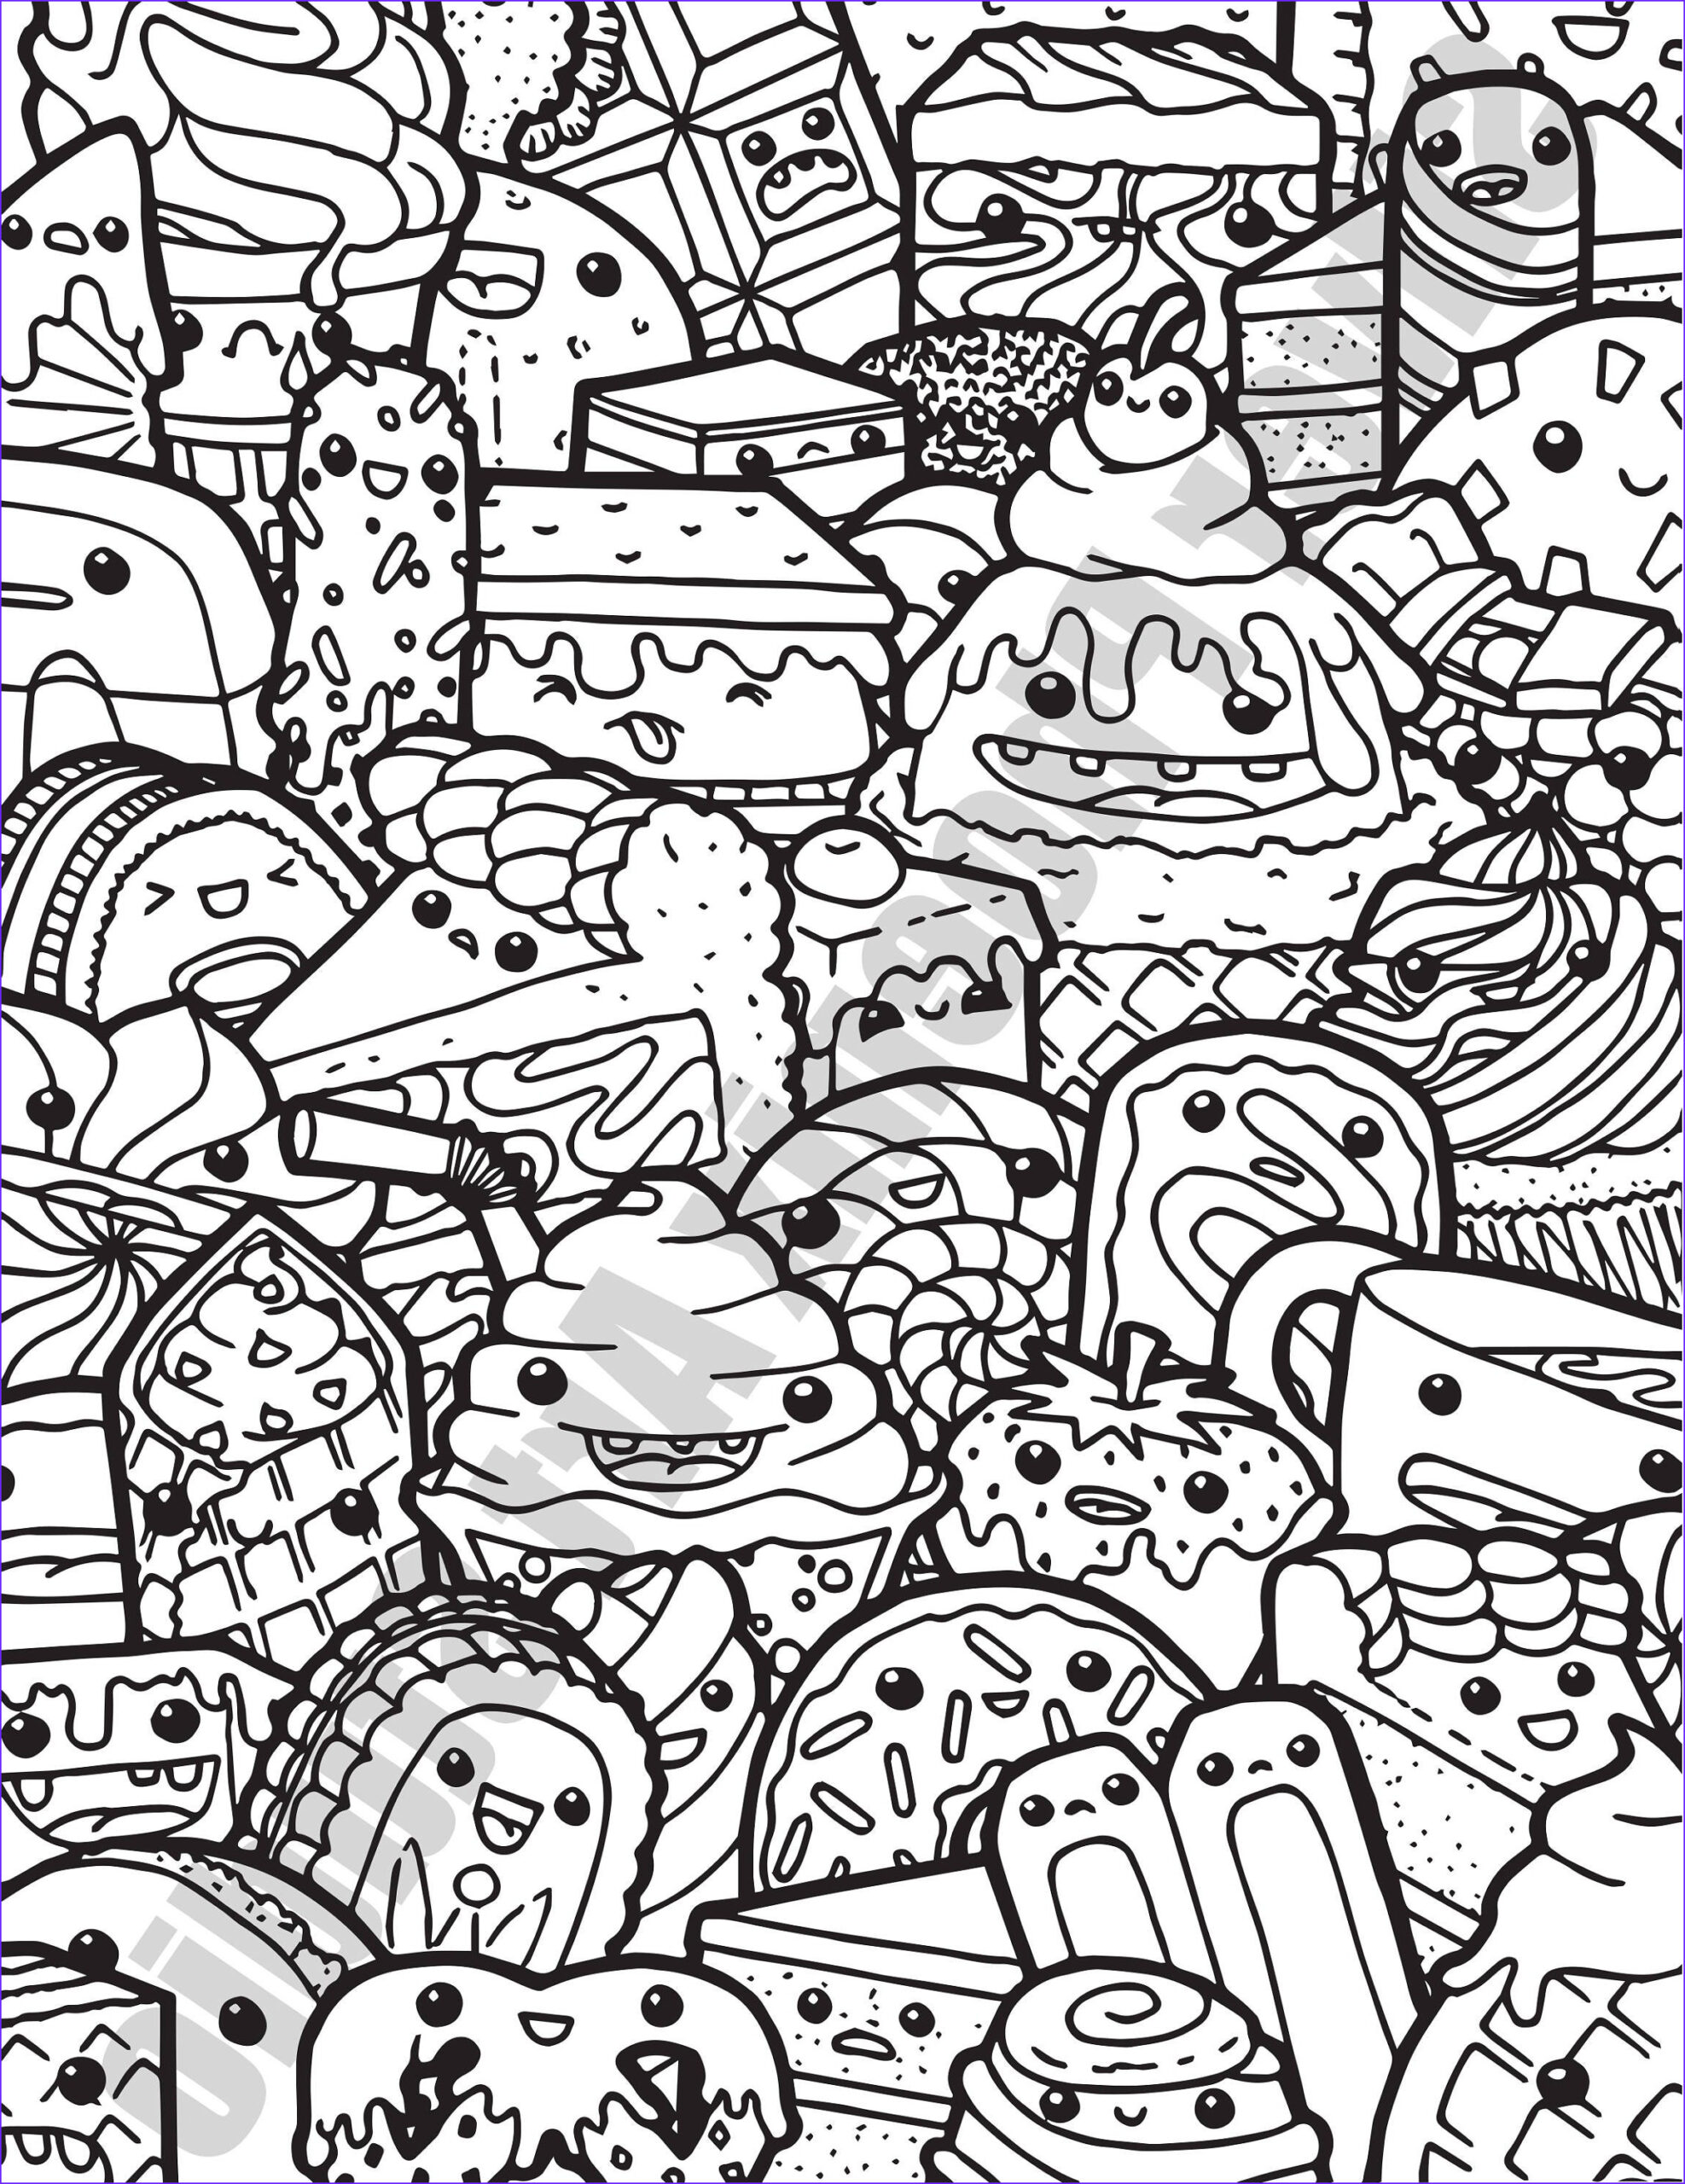 Doodle Coloring Pages Awesome Photos Kawaii Sweets Doodle Adult Coloring Page Printable Digital